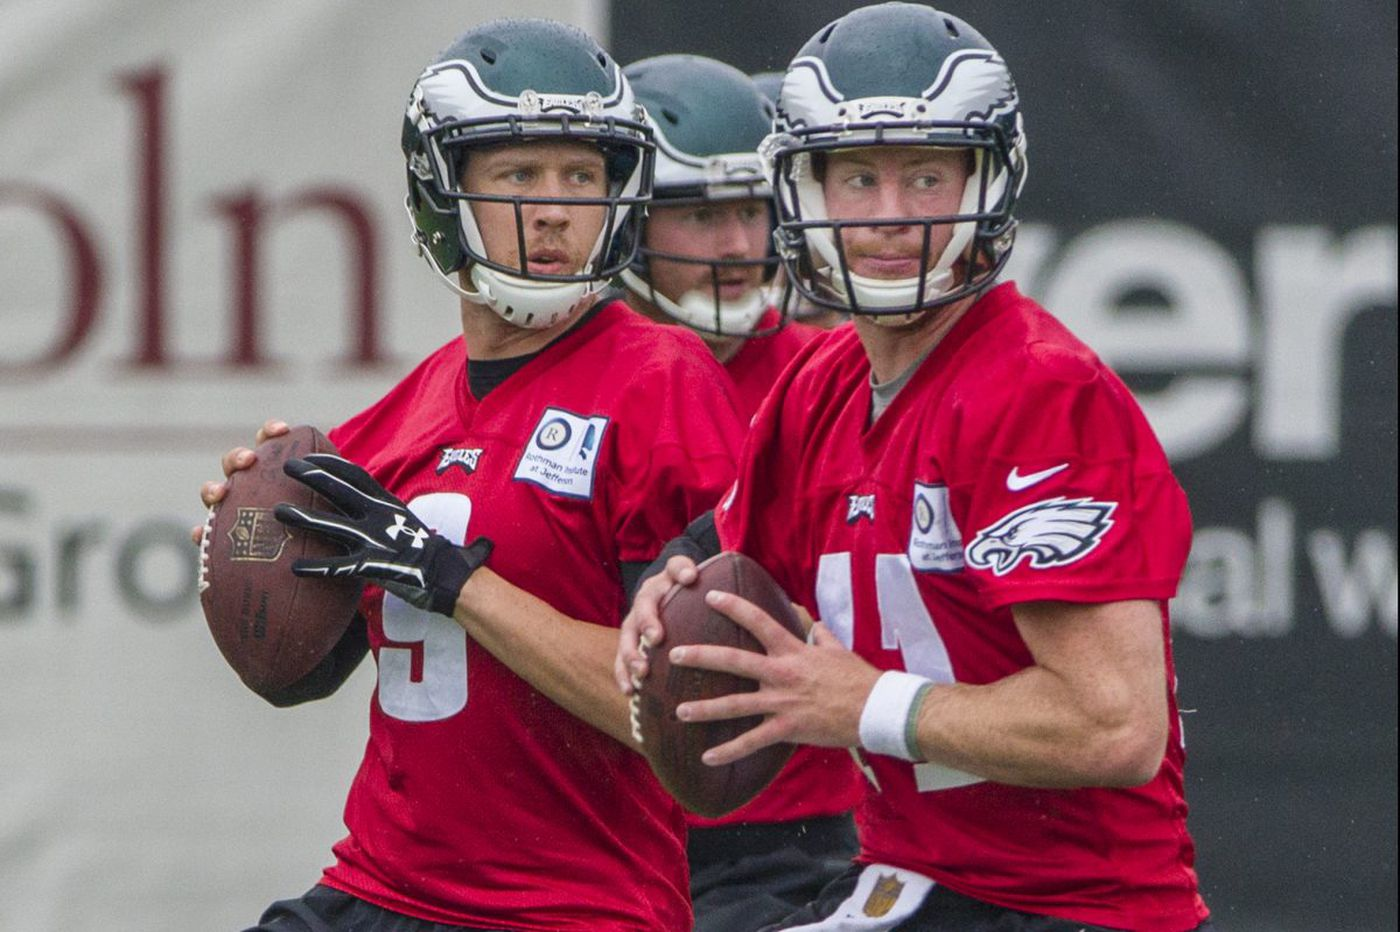 Carson Wentz is back - in the Eagles' QB room, at least